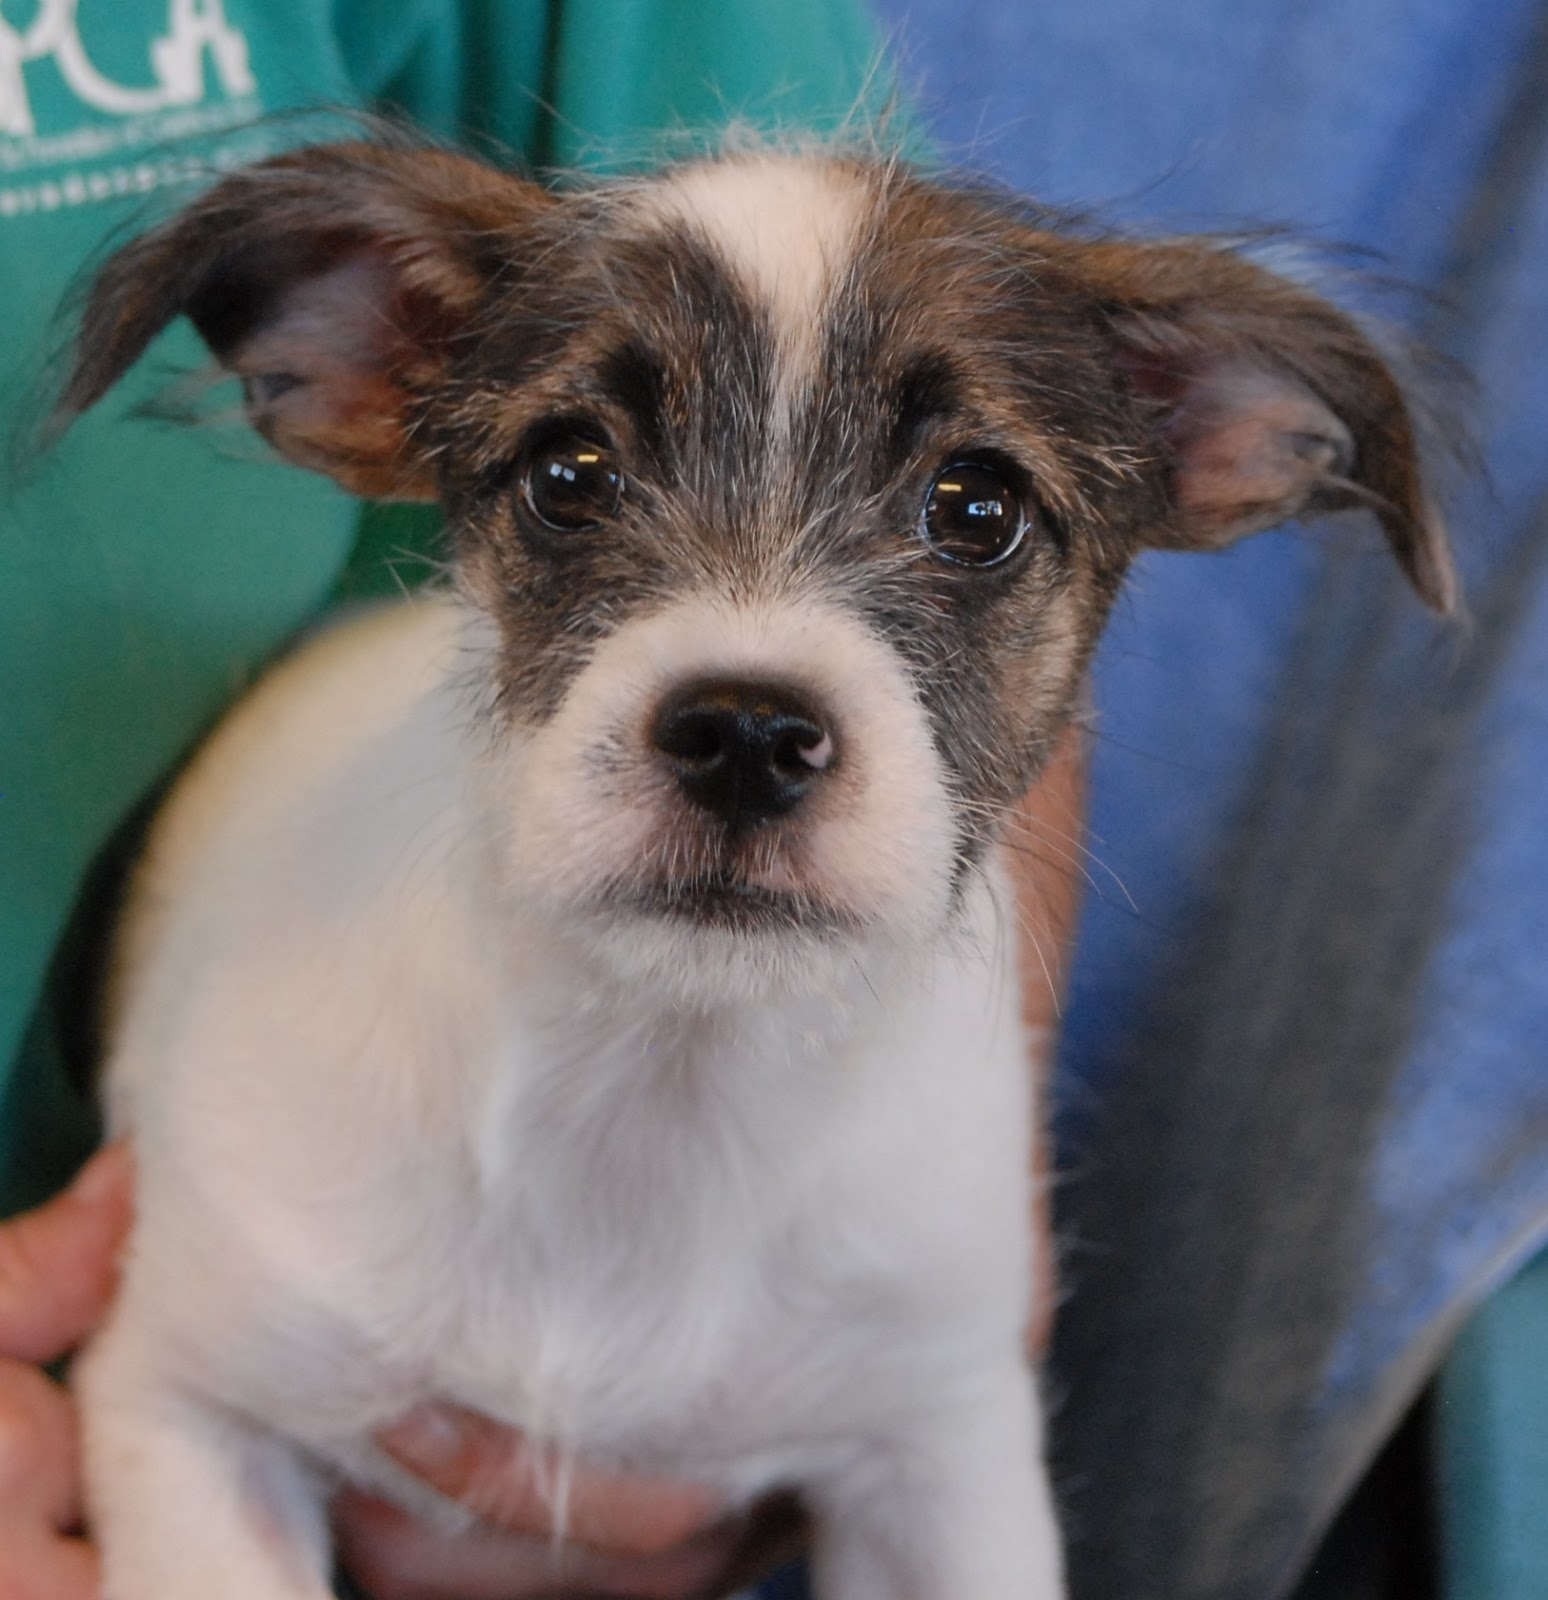 Bandit a yorkshire terrier mix baby boy debuting for adoption today